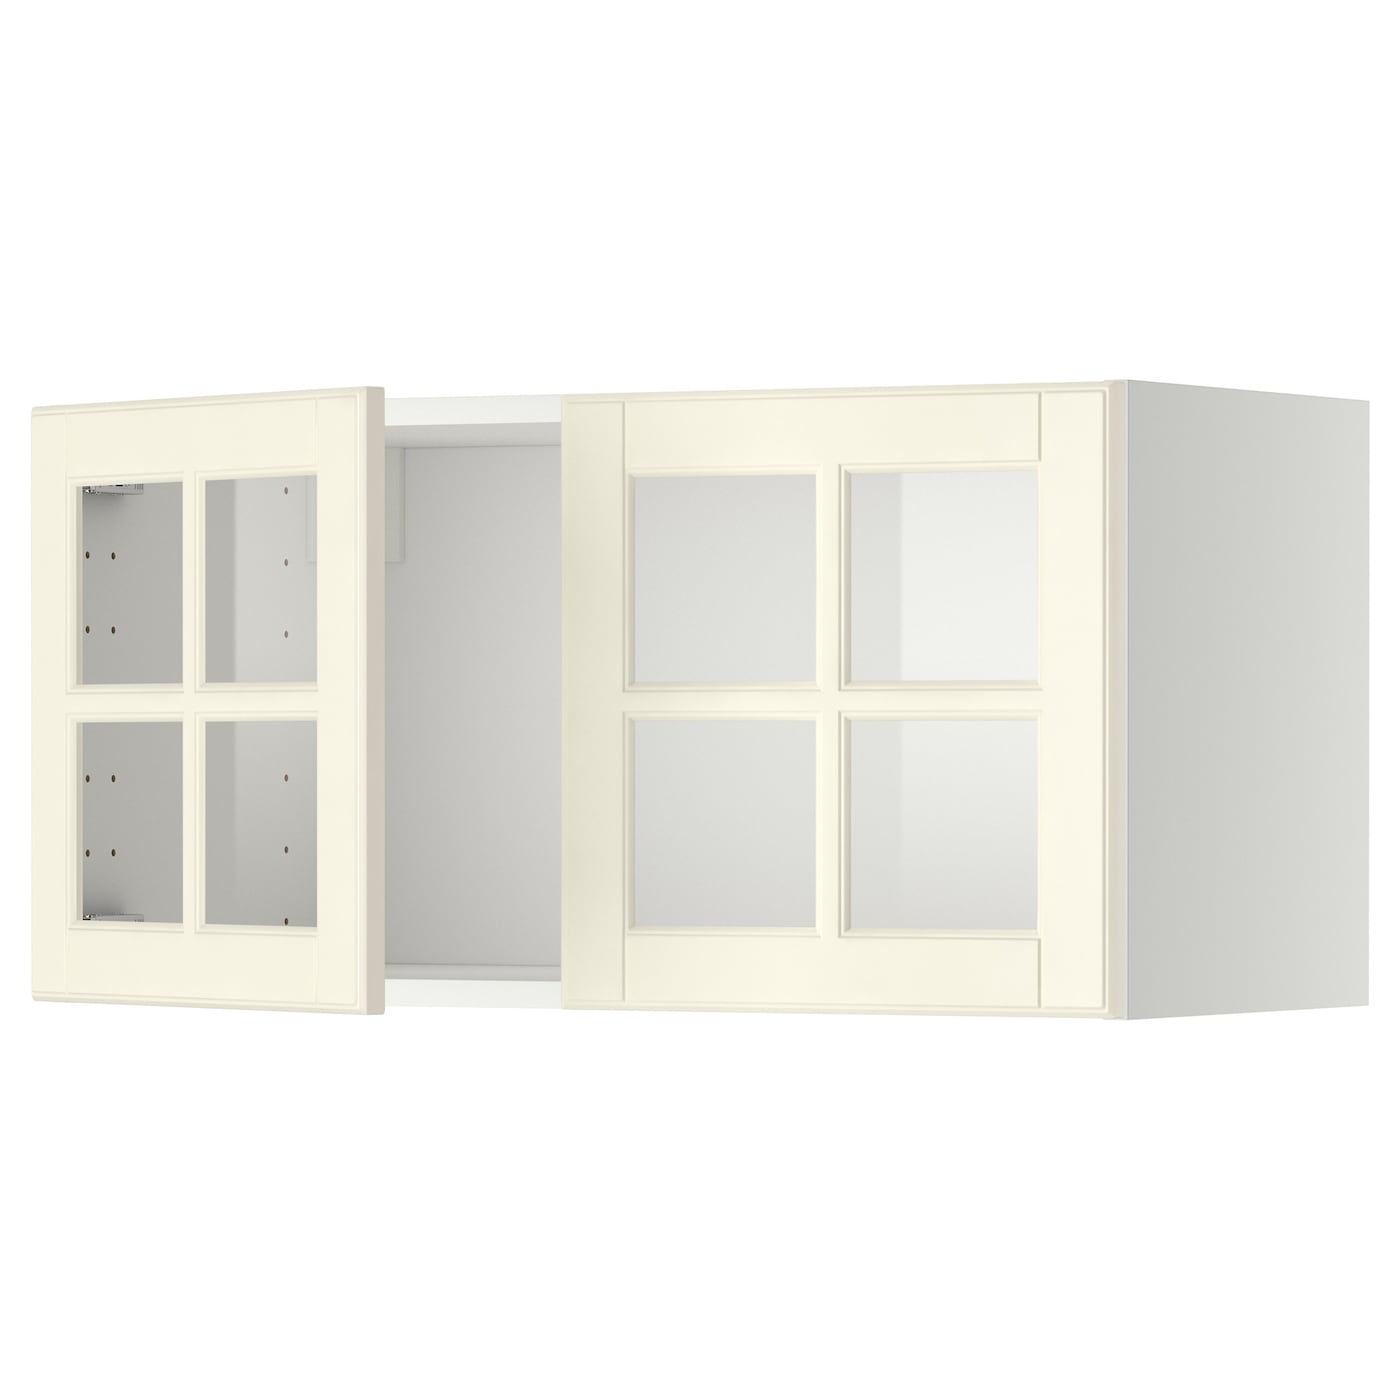 ikea wall cabinets wall cabinets amp kitchen wall units ikea 11730